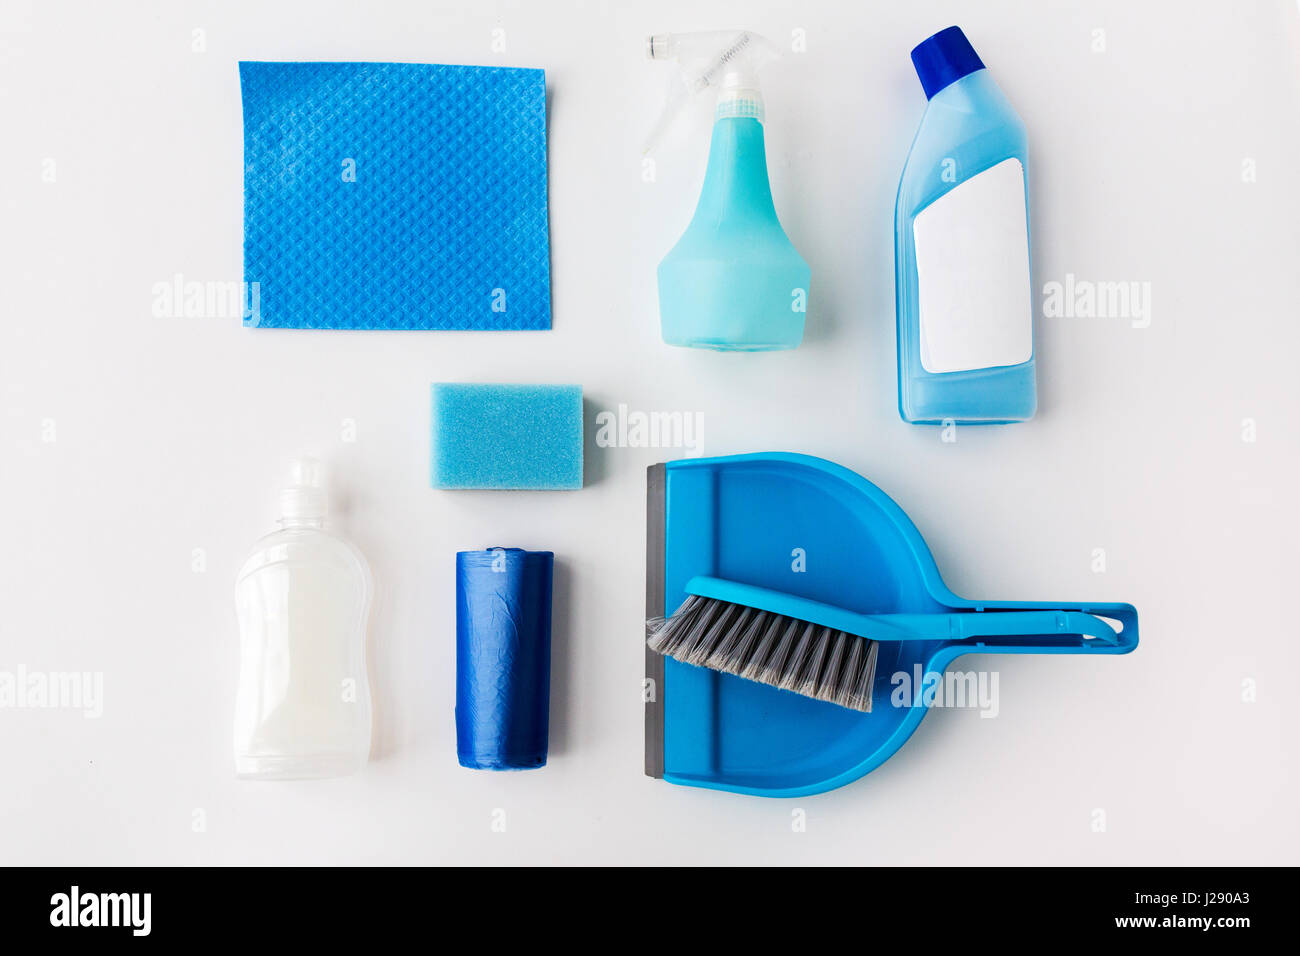 Cleaning Agent Nobody Stock Photos Cleaning Agent Nobody Stock - Cleaning stuff for bathroom